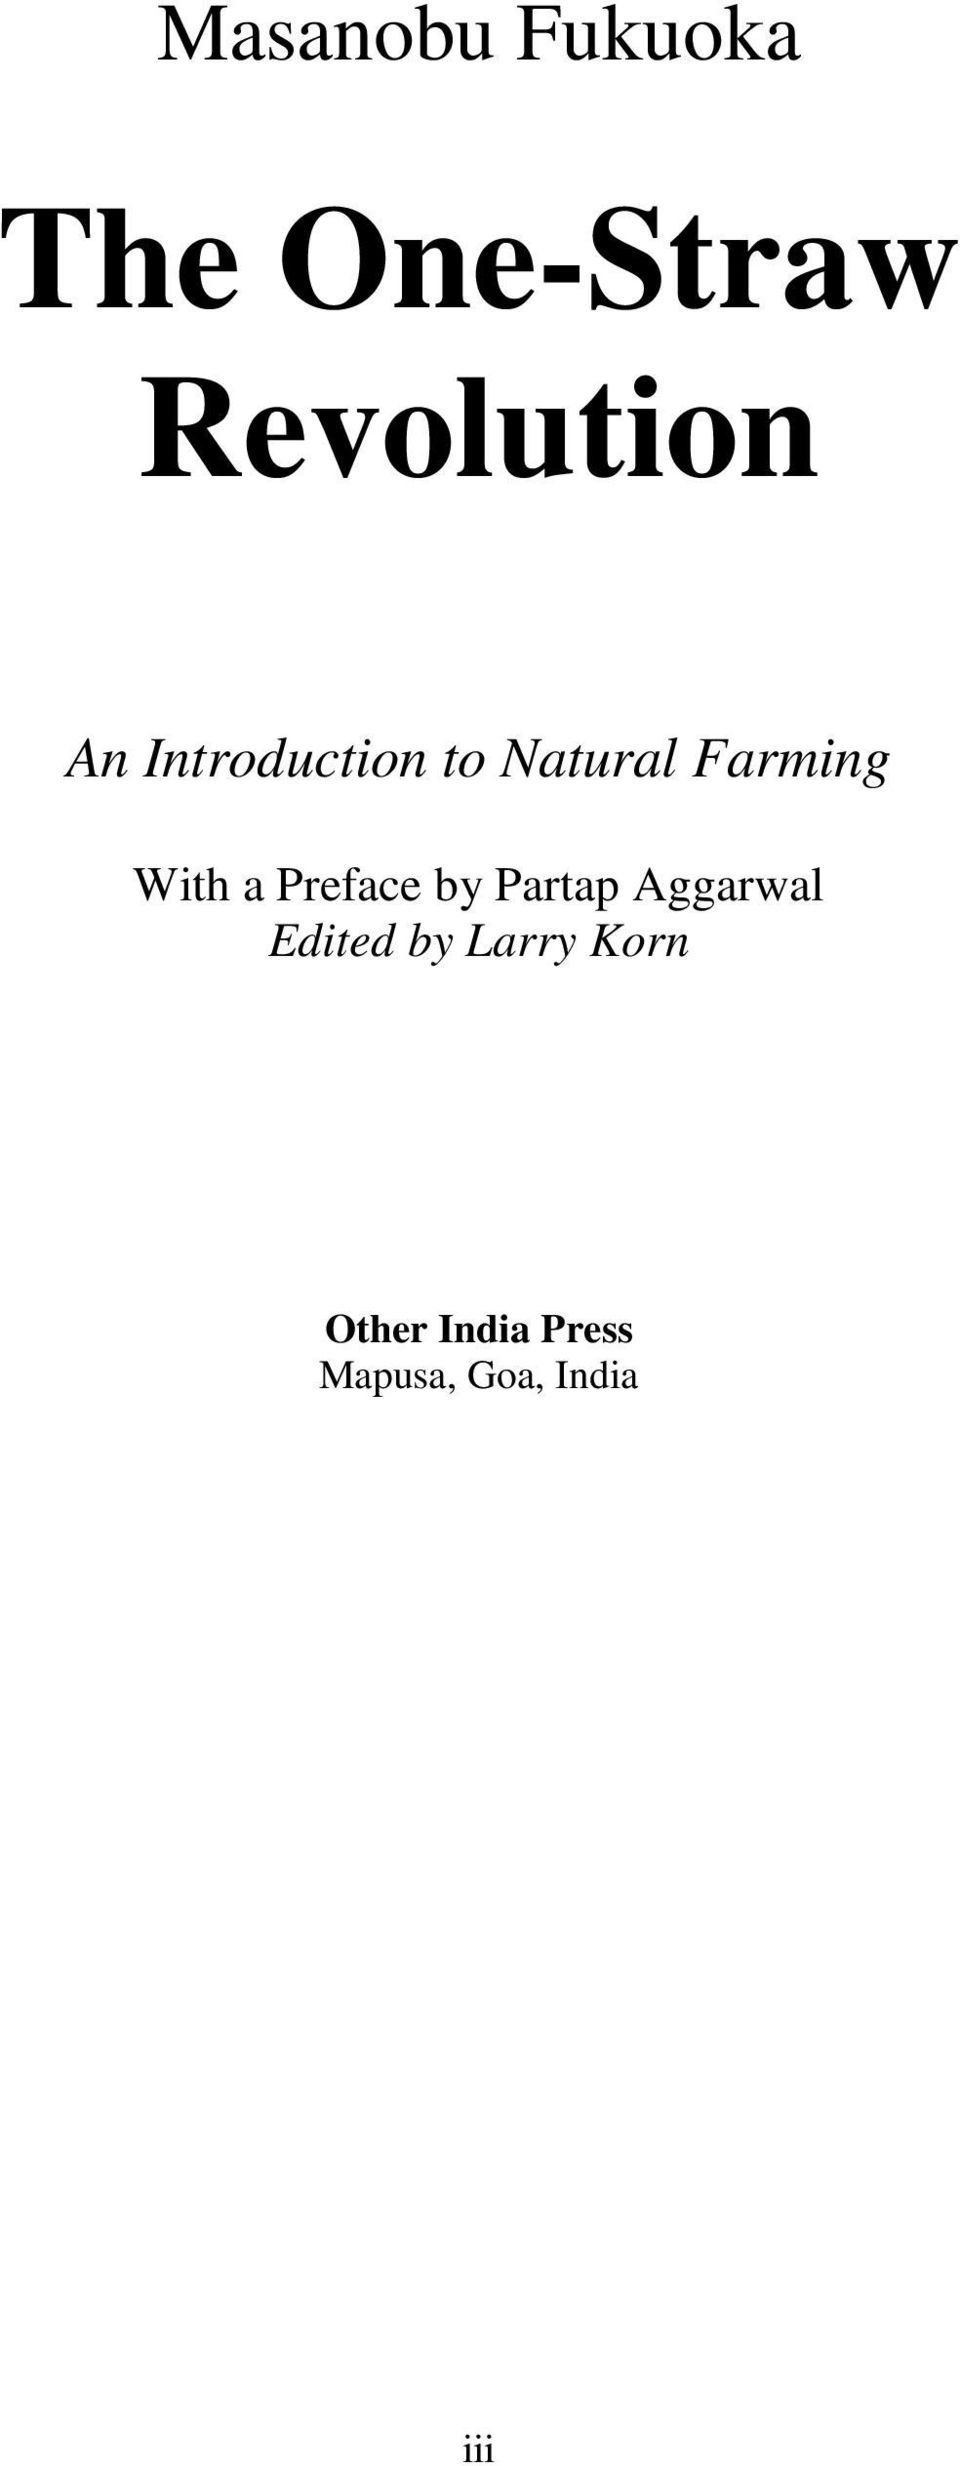 Preface by Partap Aggarwal Edited by Larry